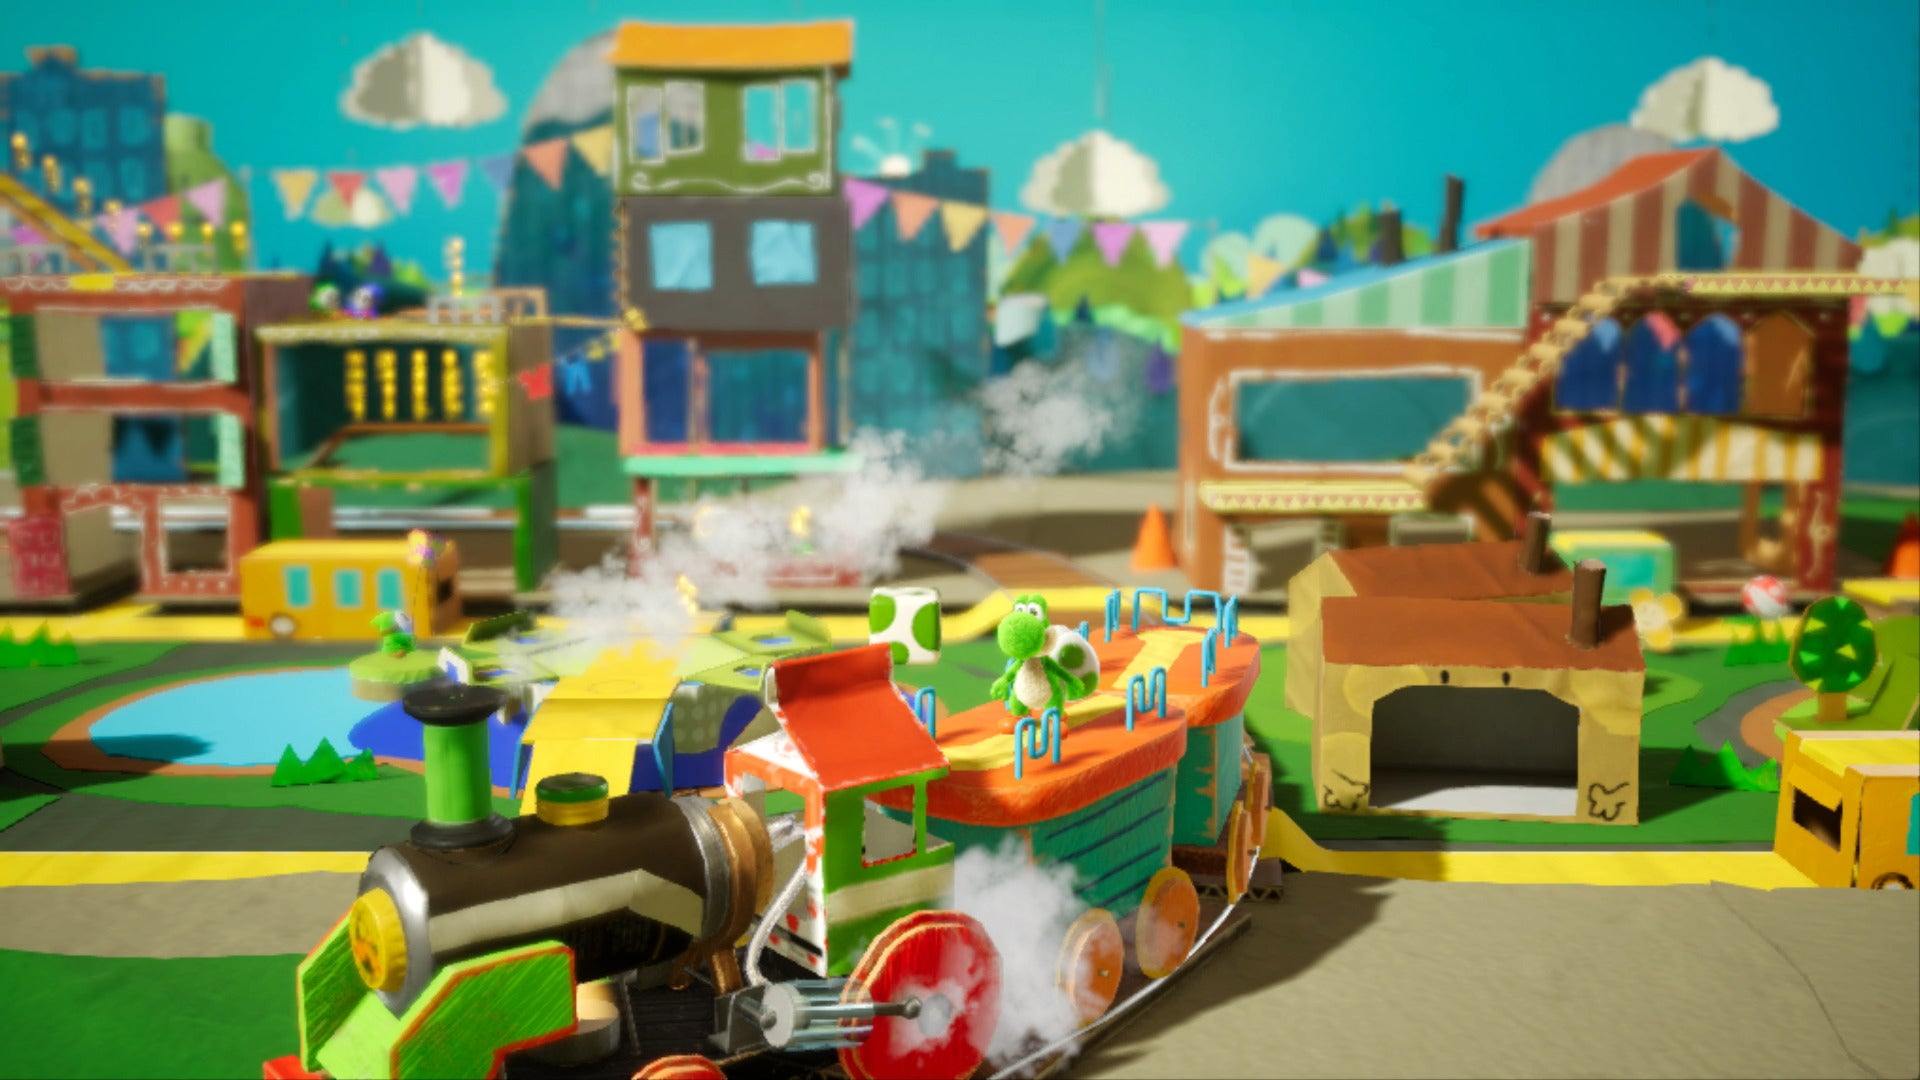 The Best Part Of Yoshi's Crafted World Is The Scenery